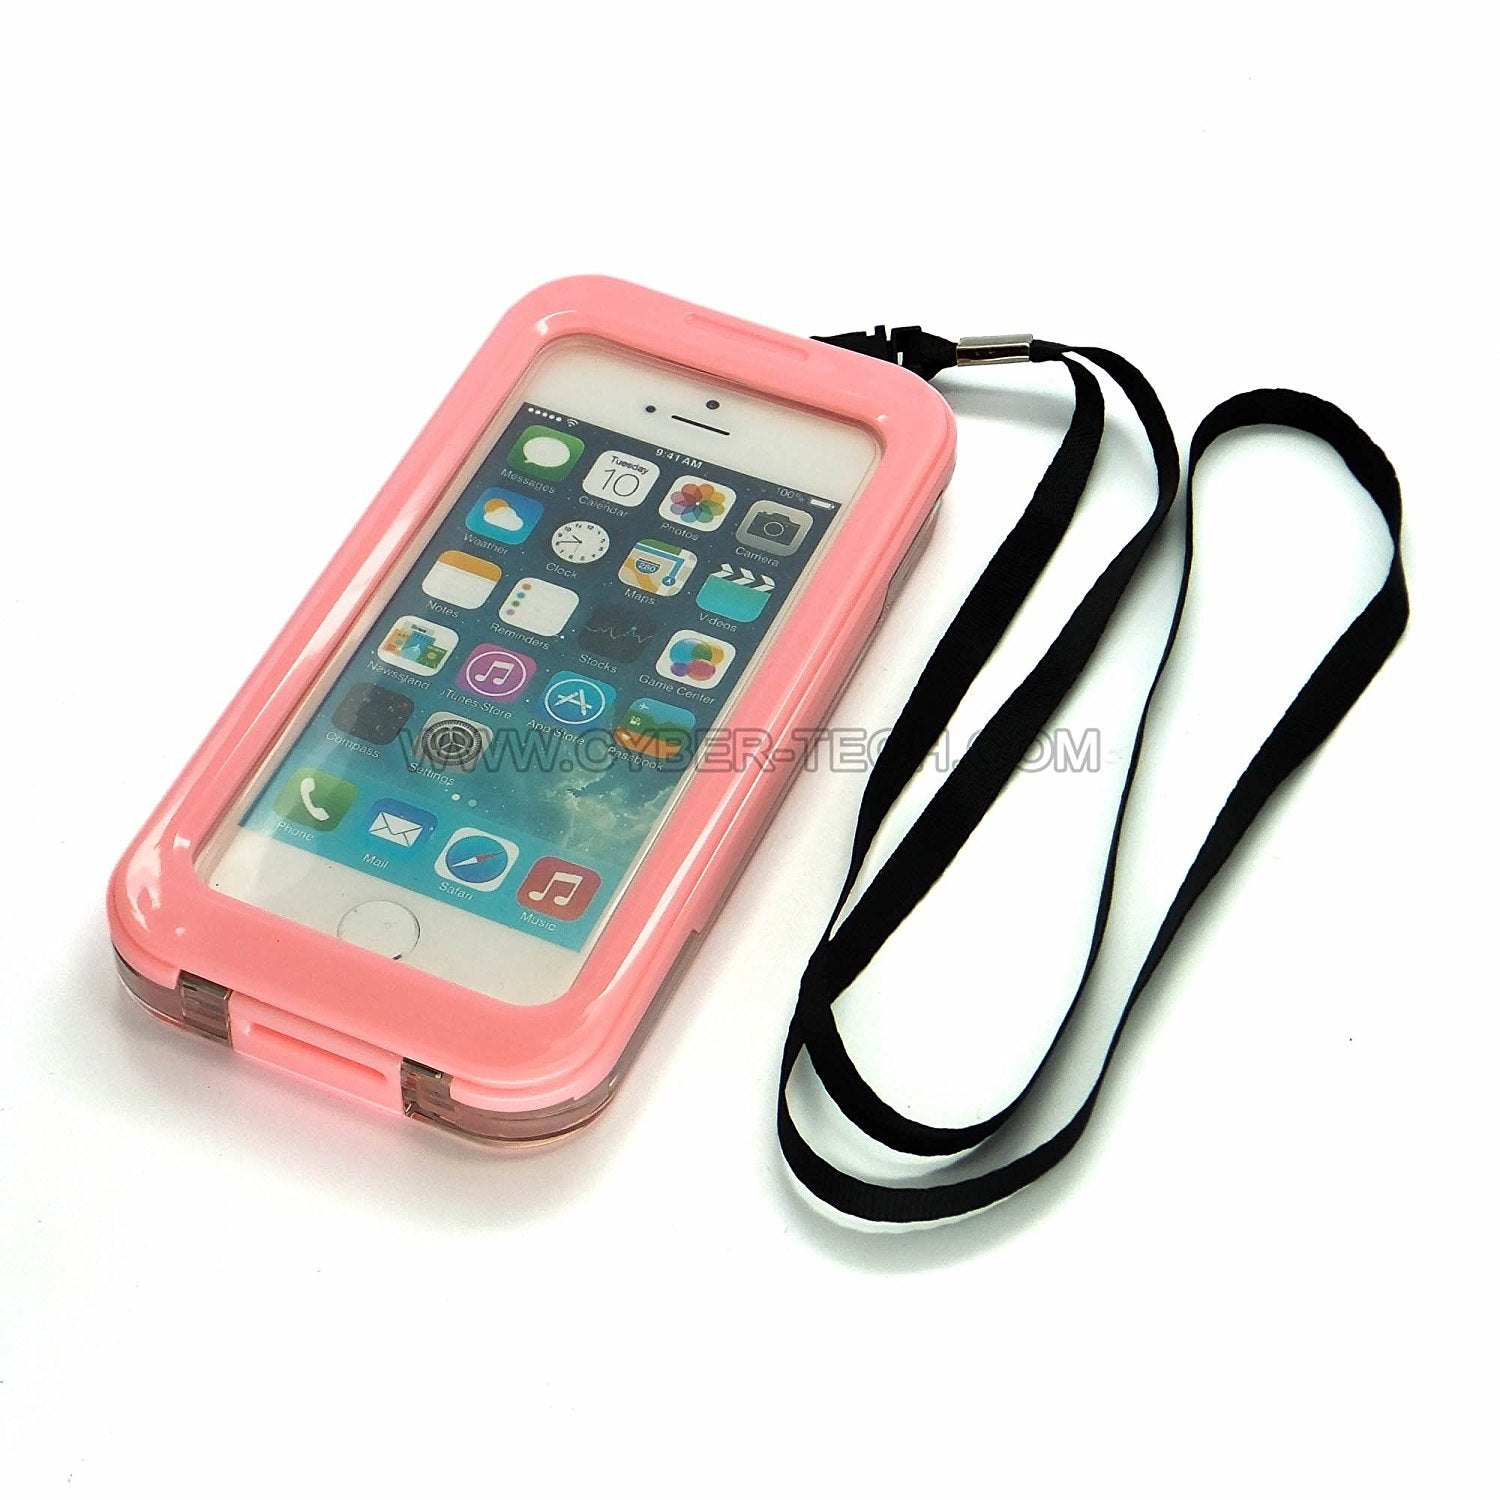 Waterproof case for iPhone 5C (Pink)